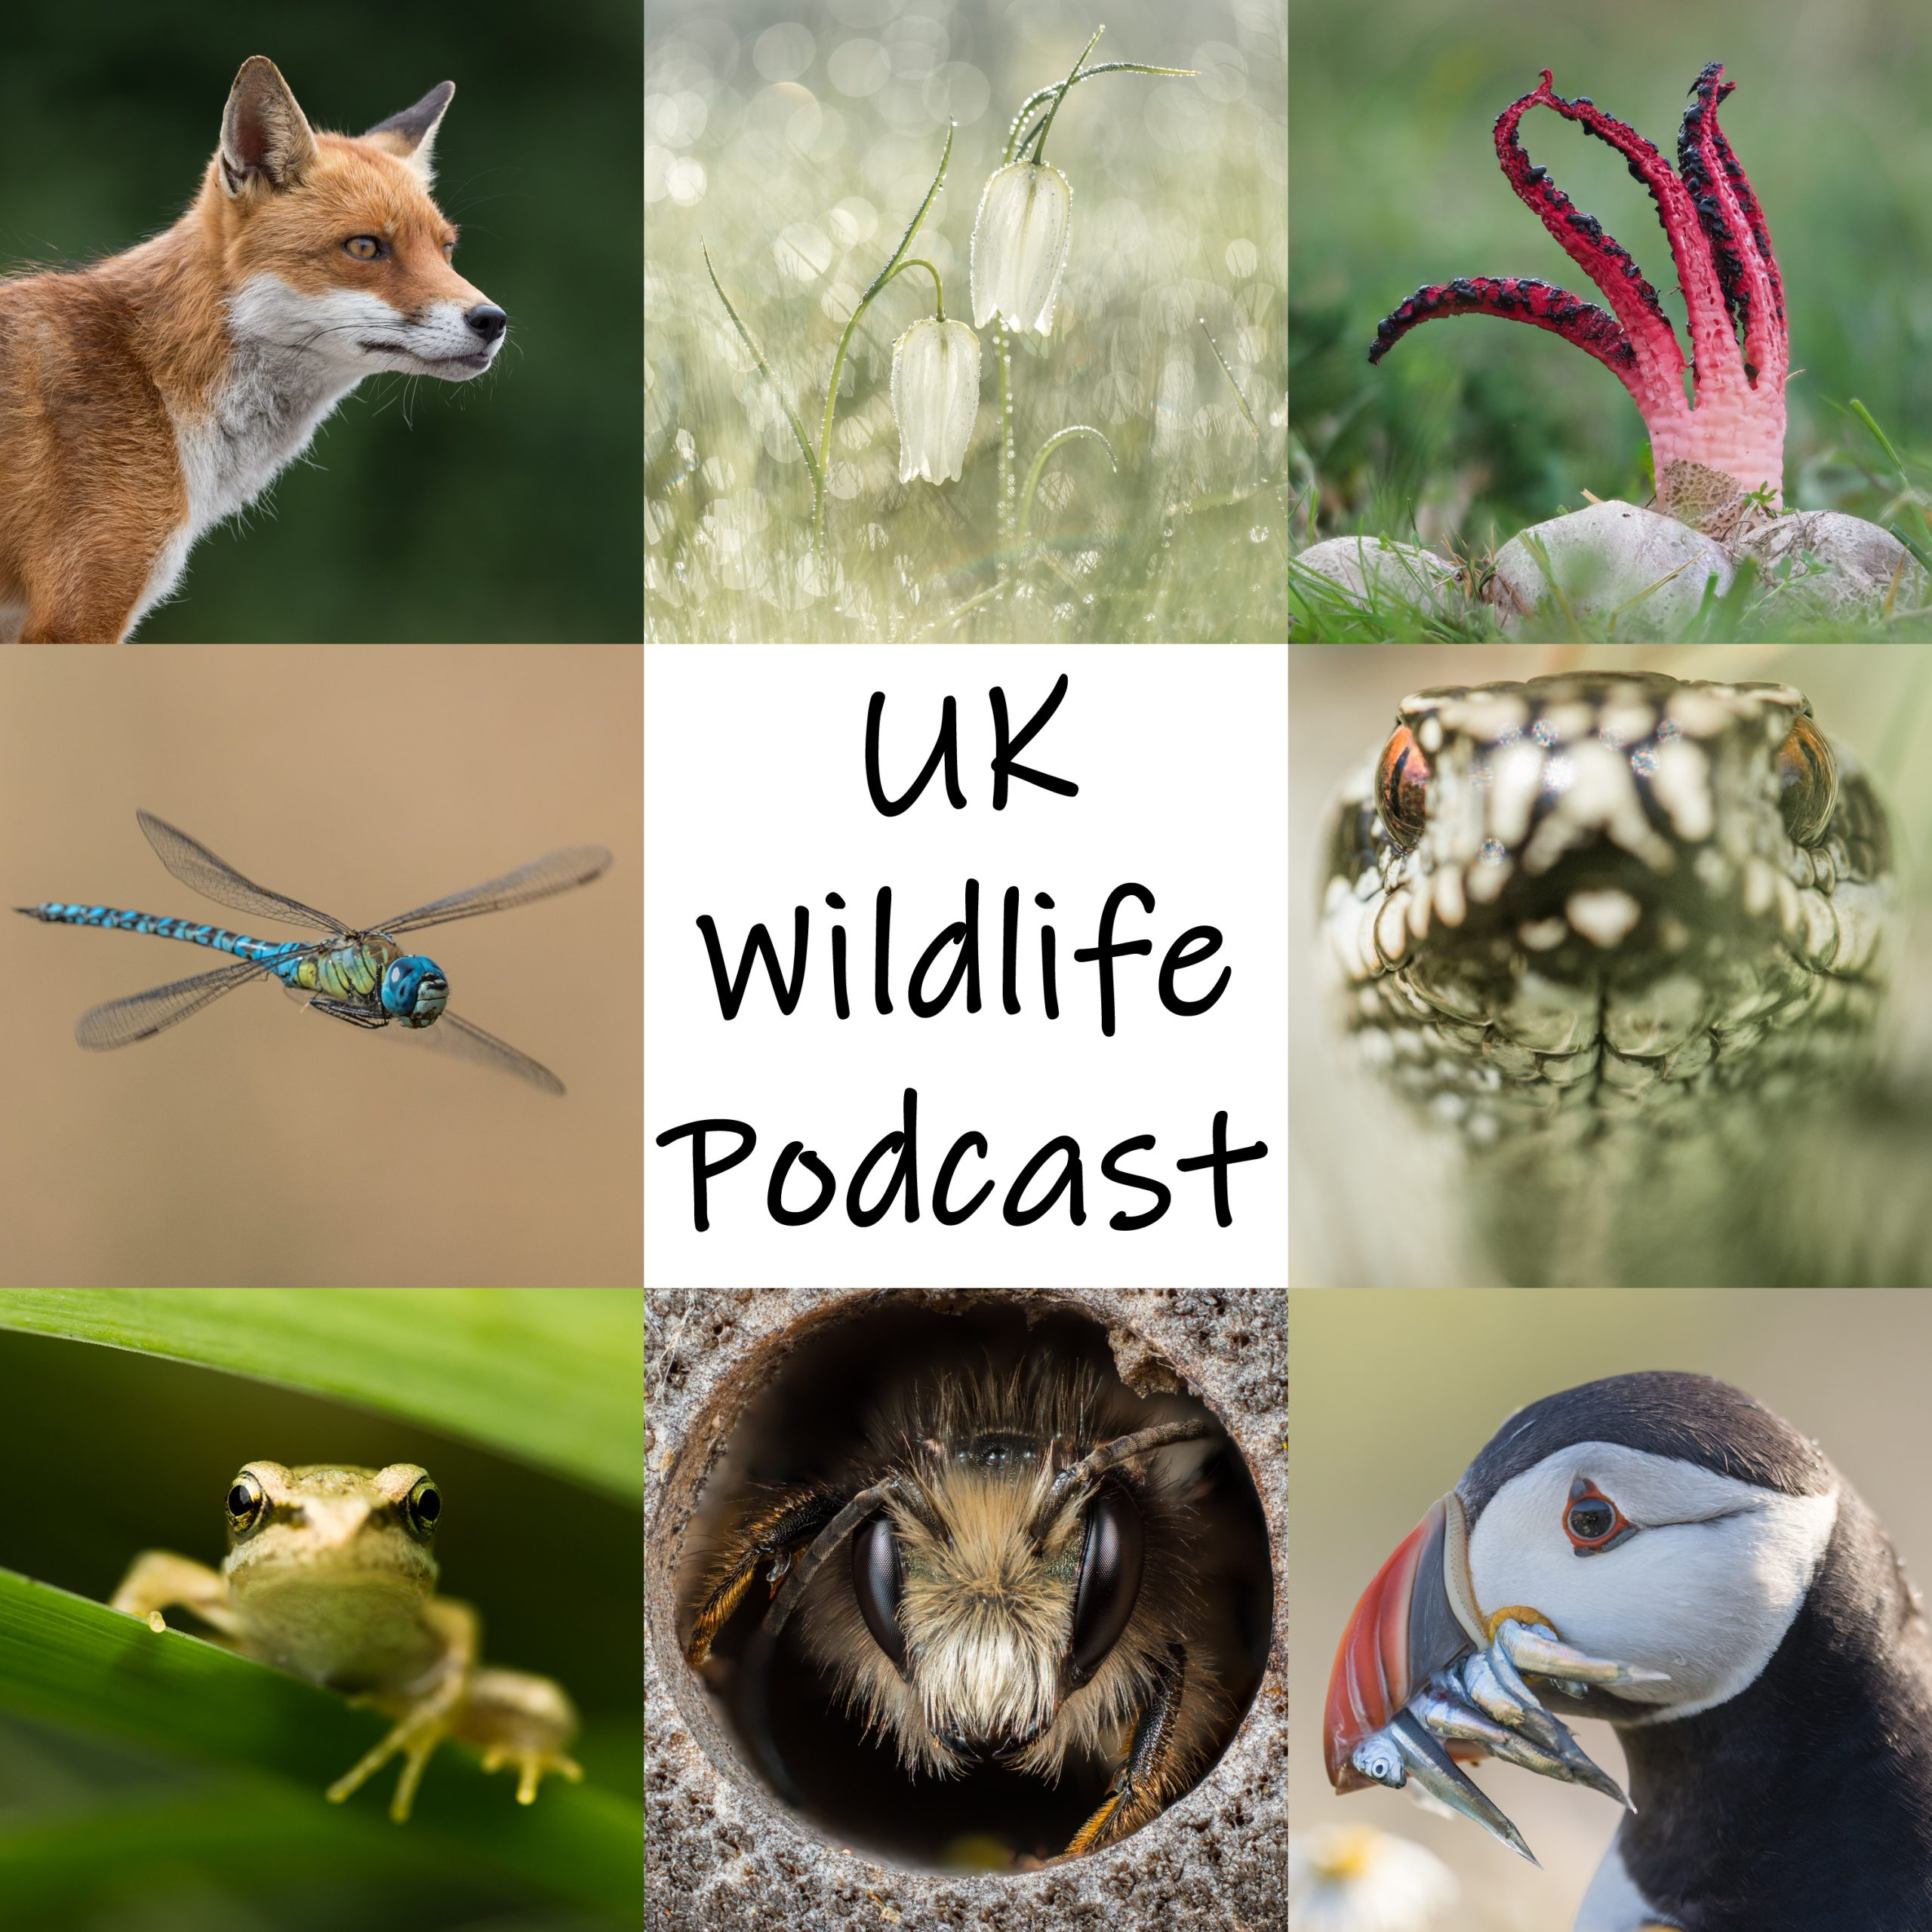 UK Wildlife Podcast